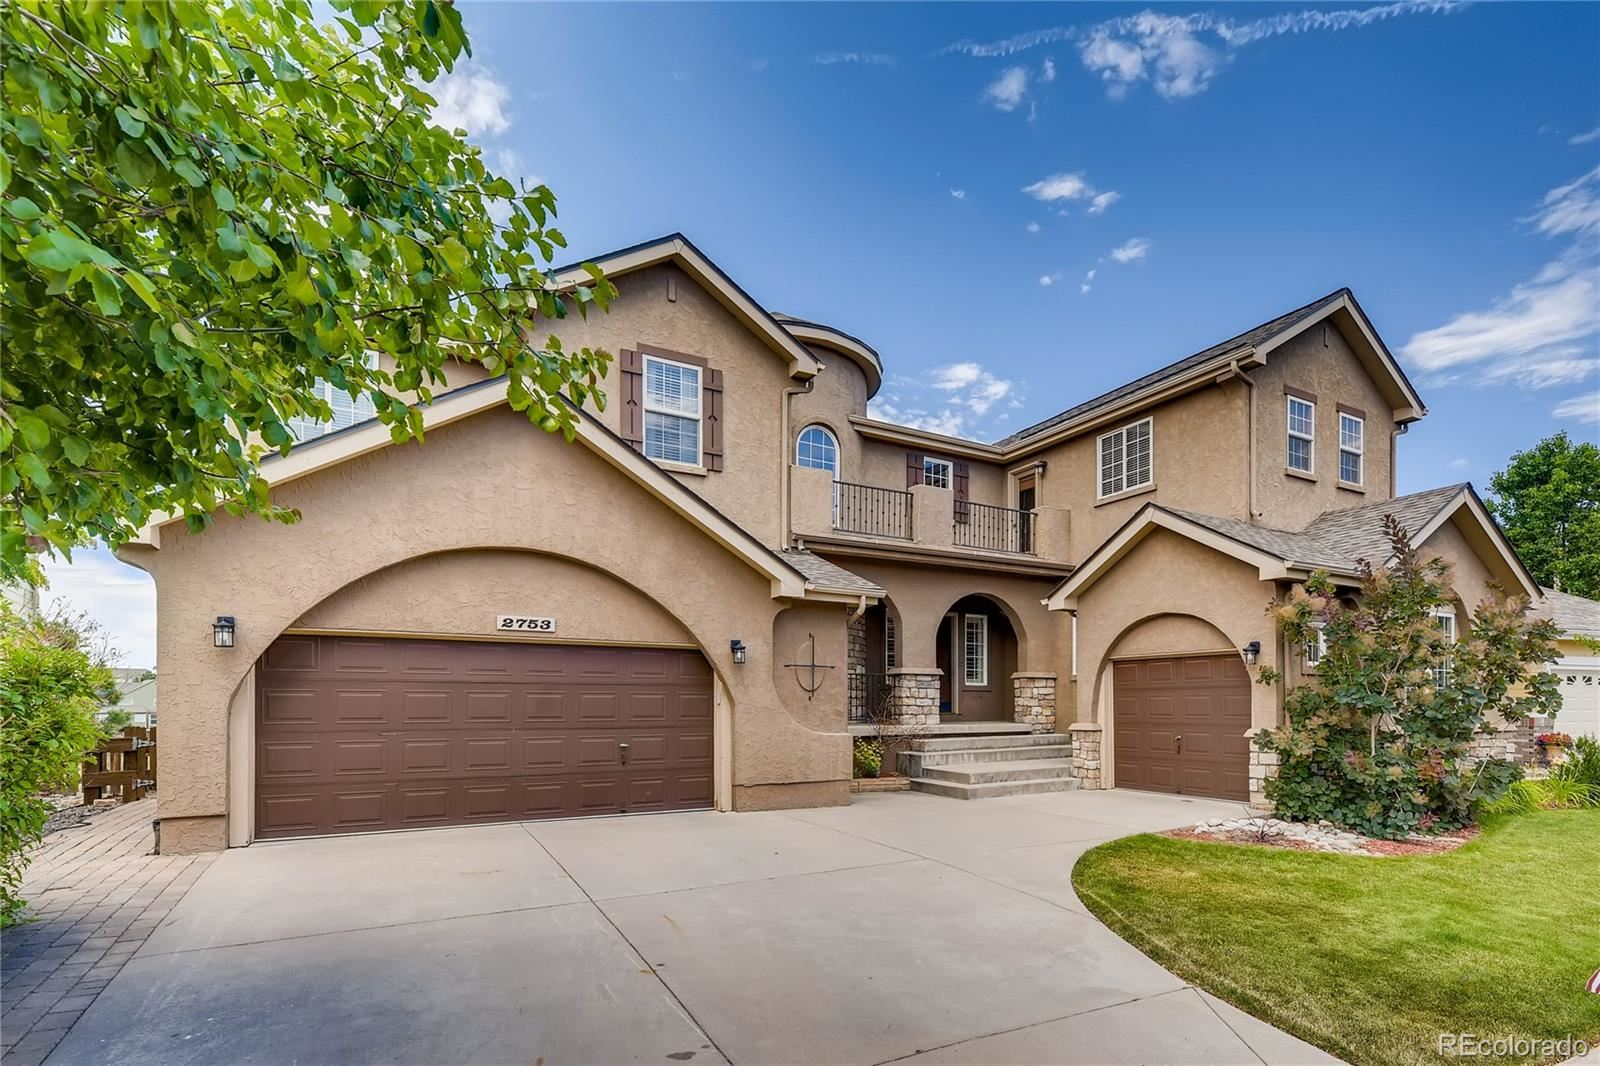 2753 Timberchase Trail, Highlands Ranch, CO 80126 - #: 7440469